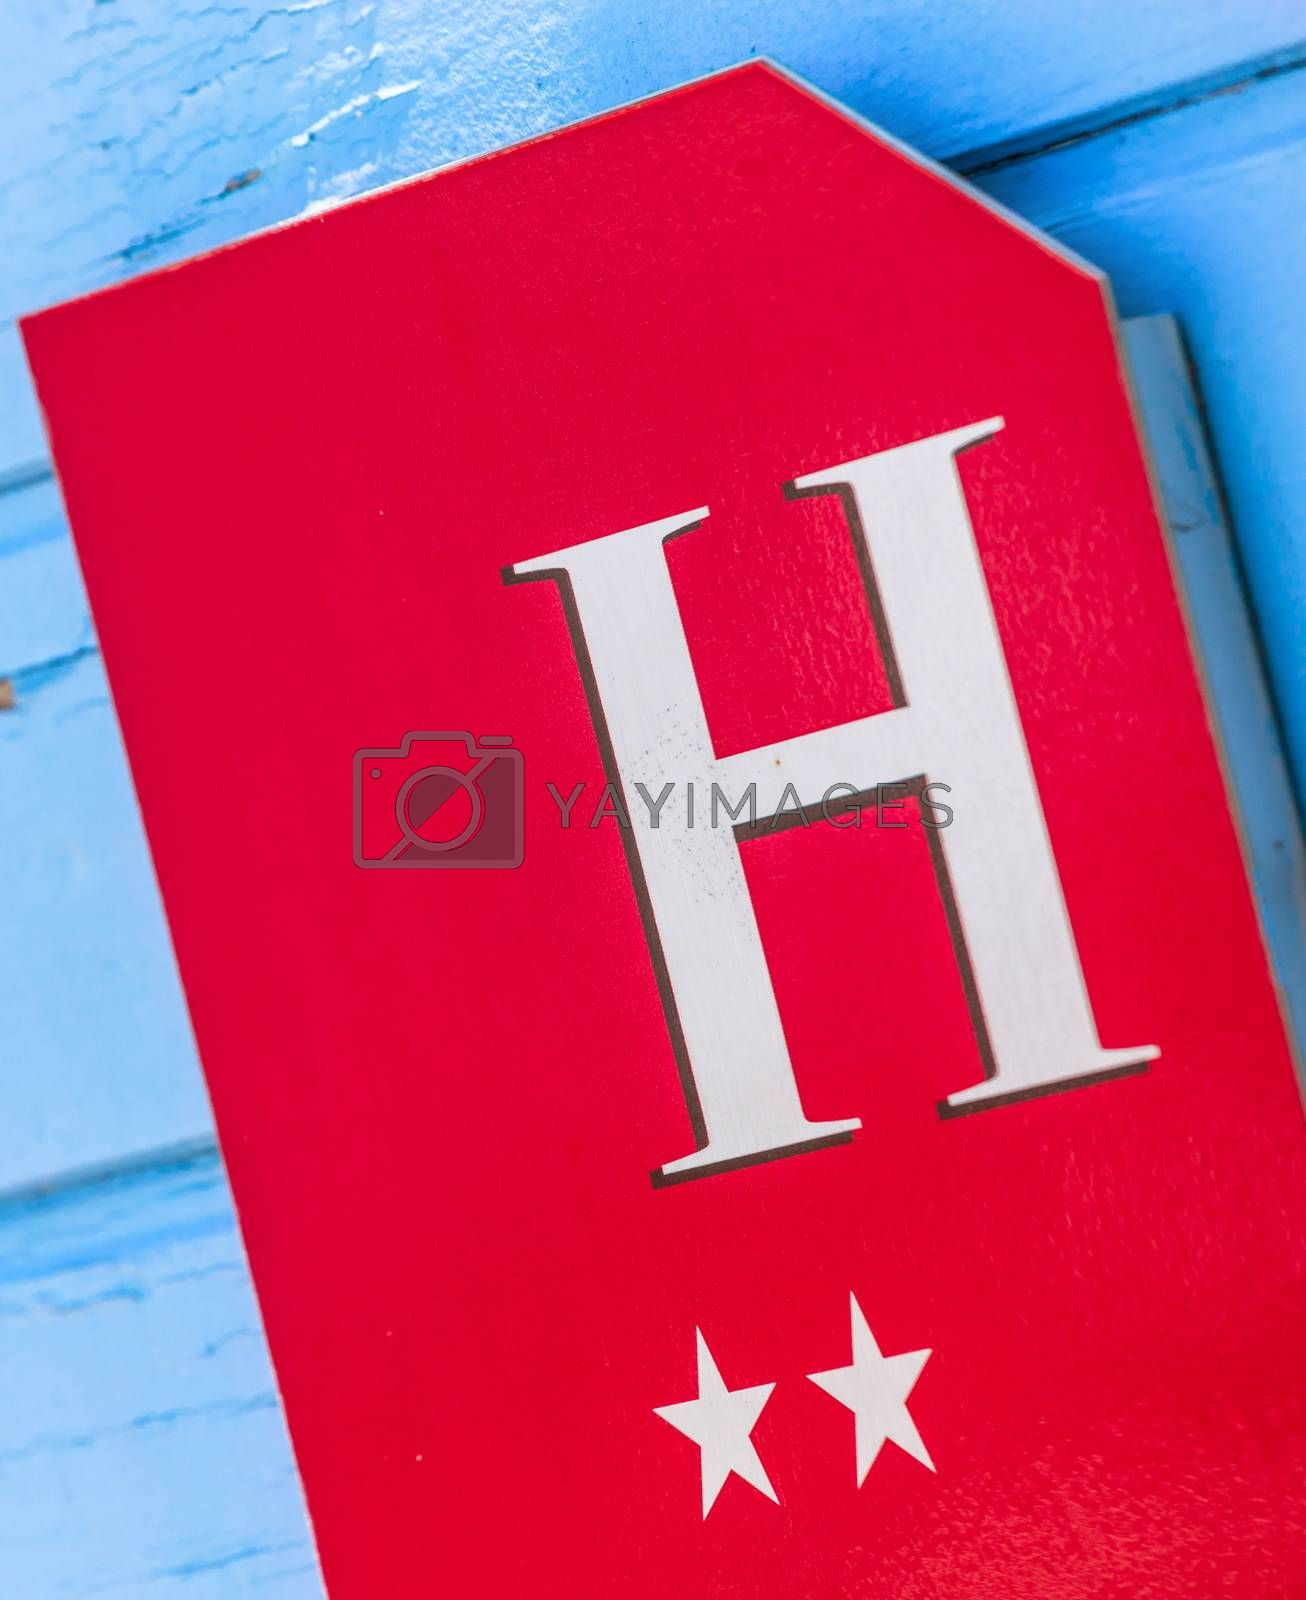 Royalty free image of coloreful hotel sign on wooden wall by pixinoo